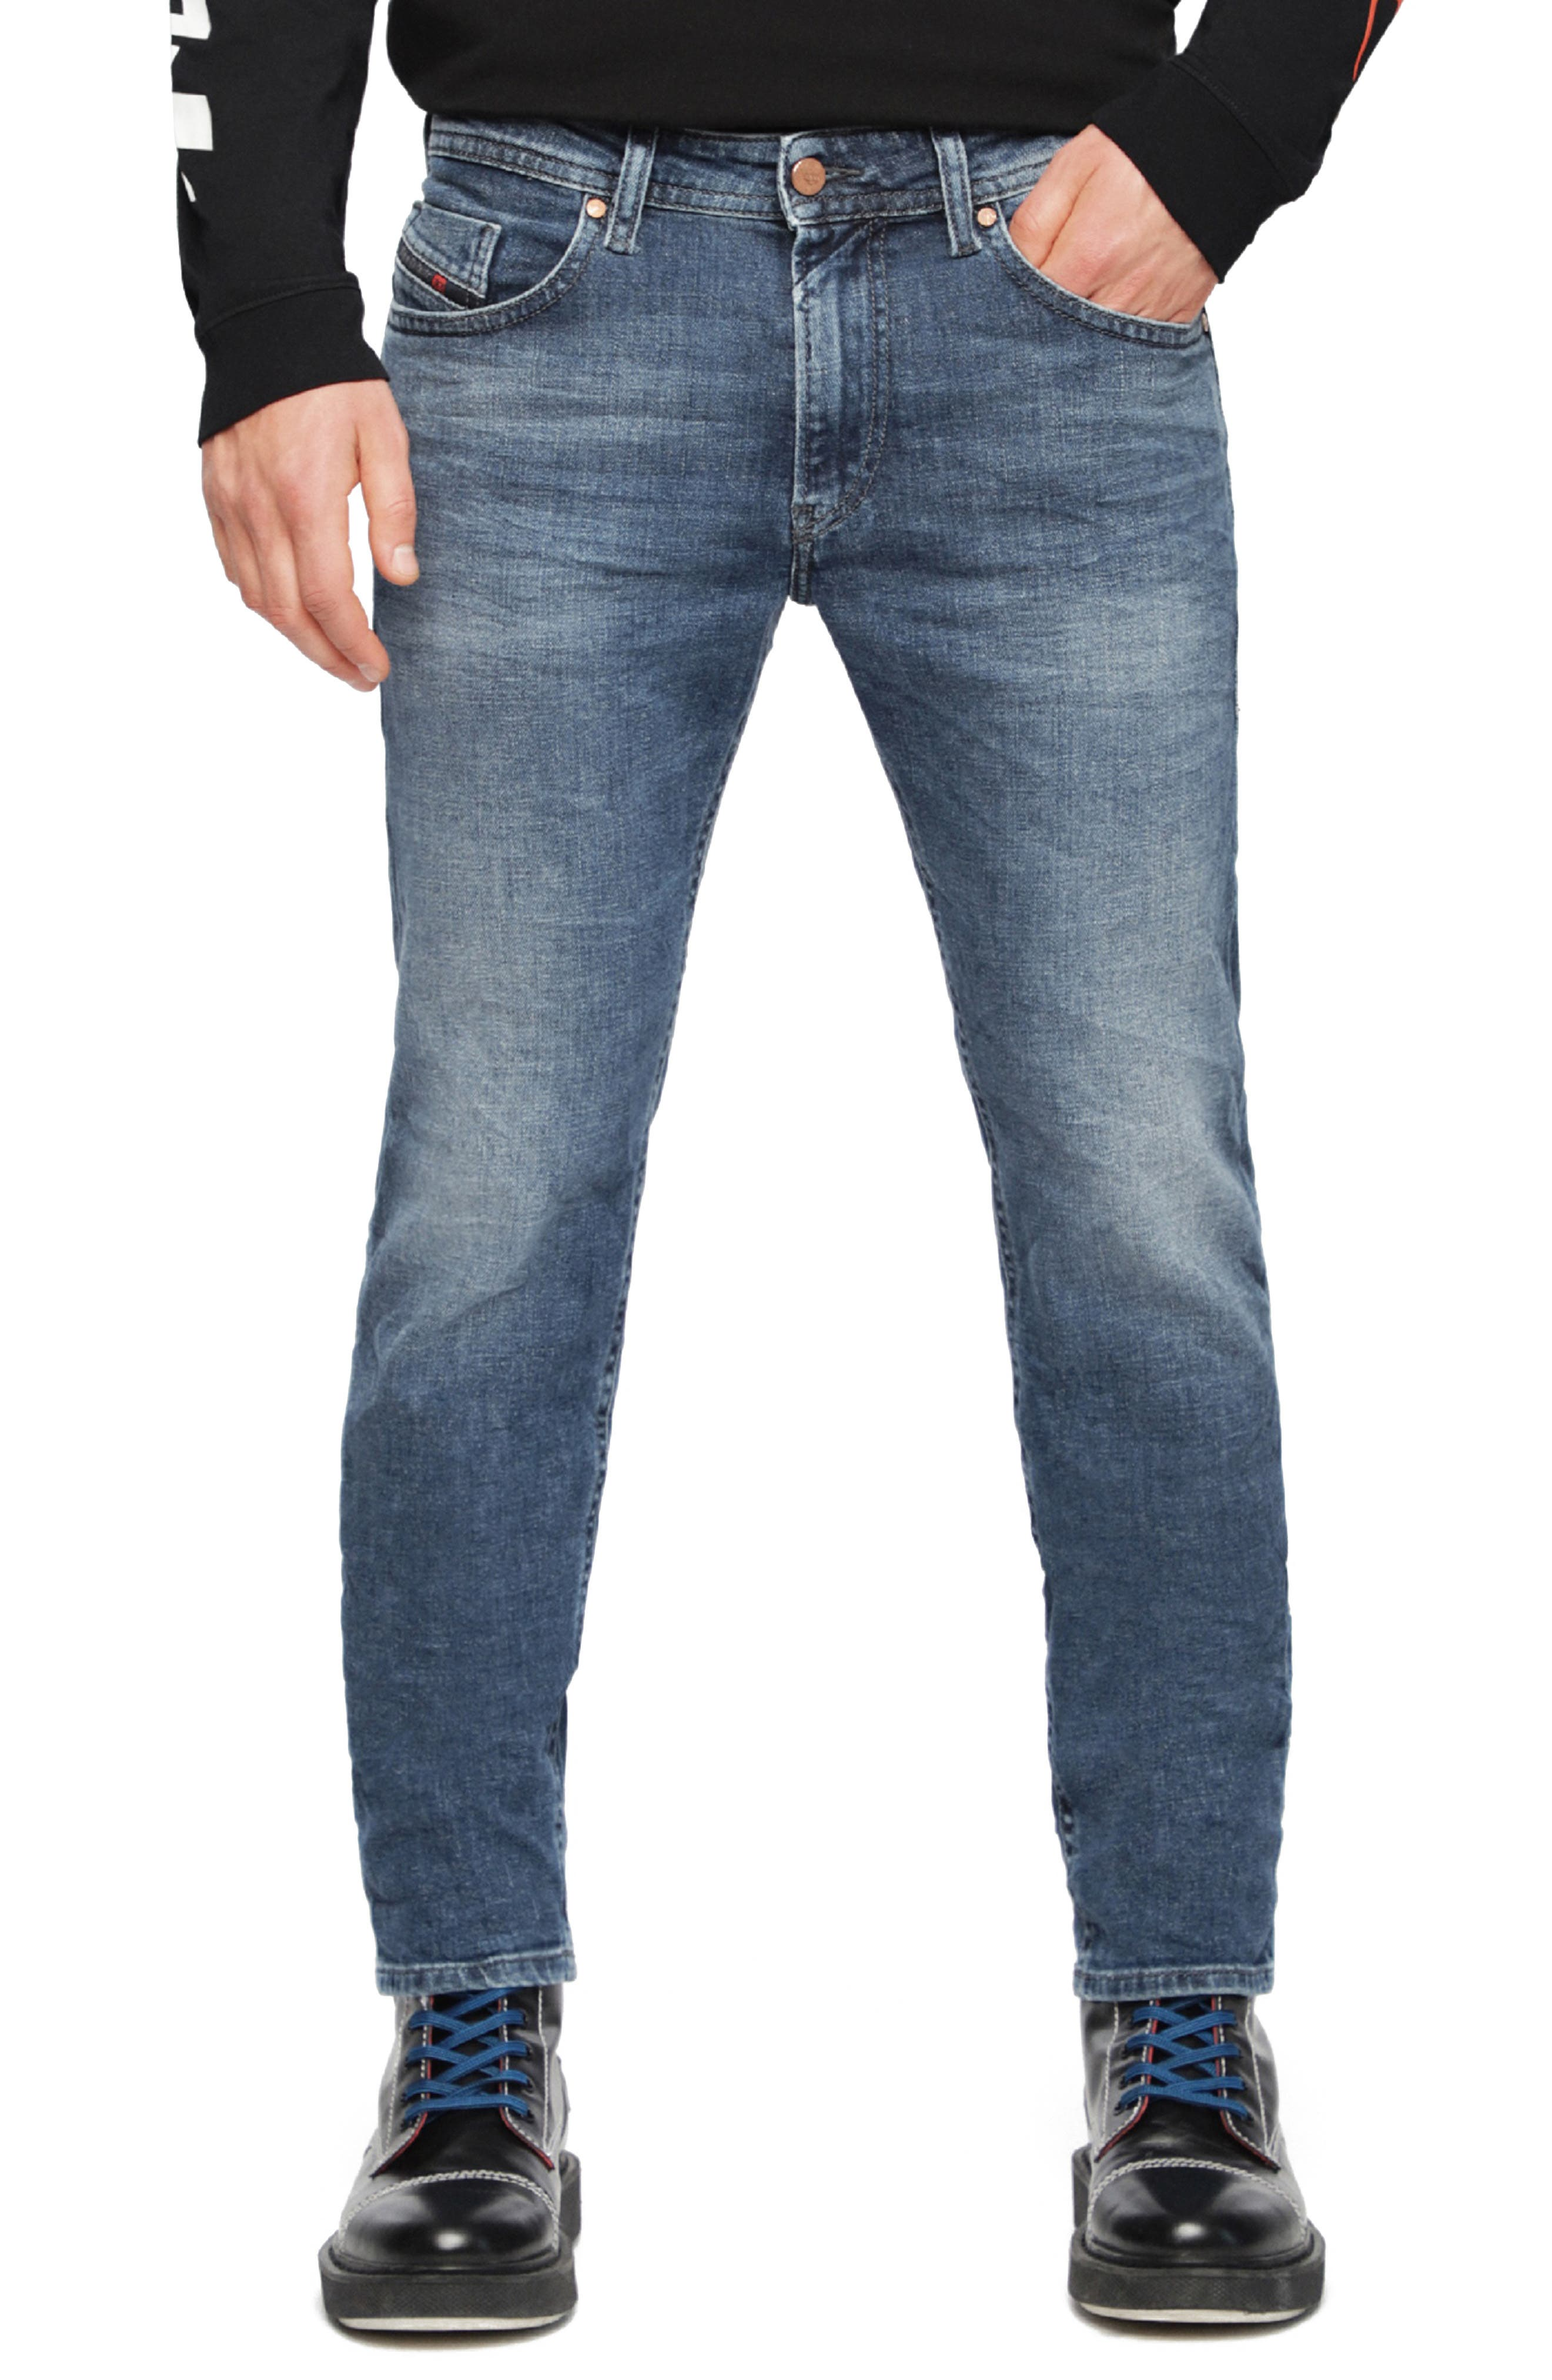 Thommer Slim Fit Jeans,                             Main thumbnail 1, color,                             084UH